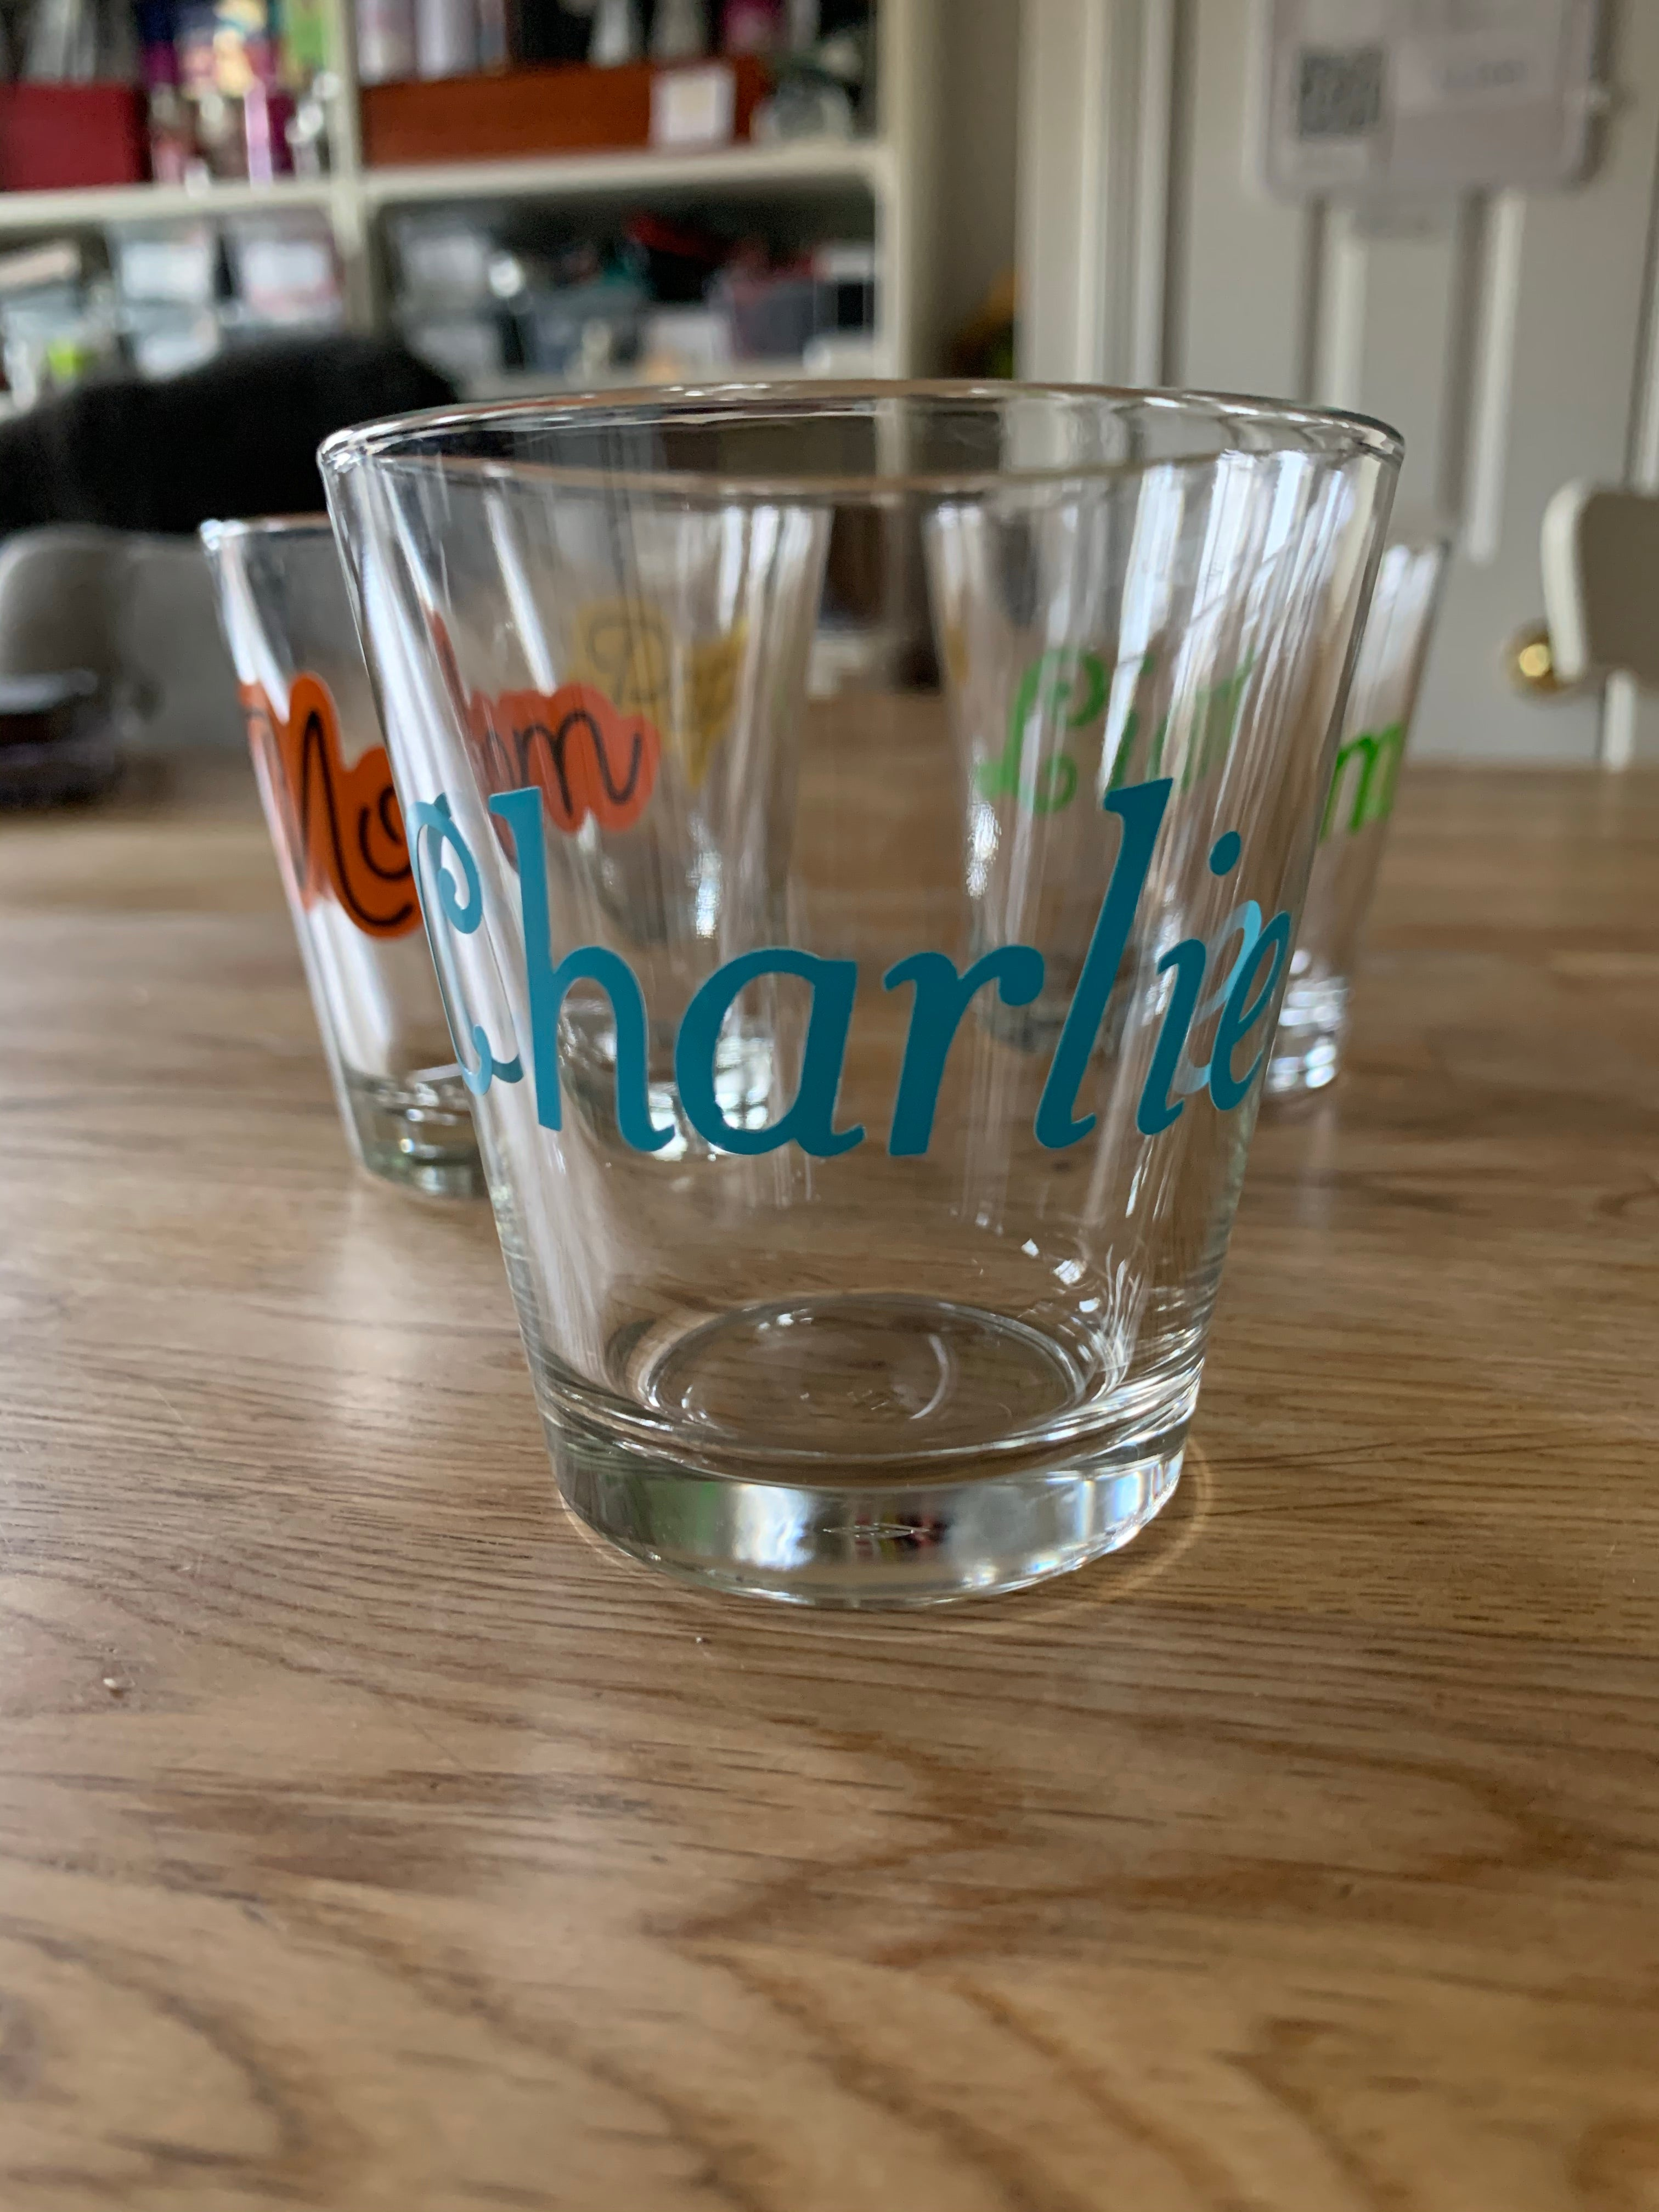 Personalized glass with name